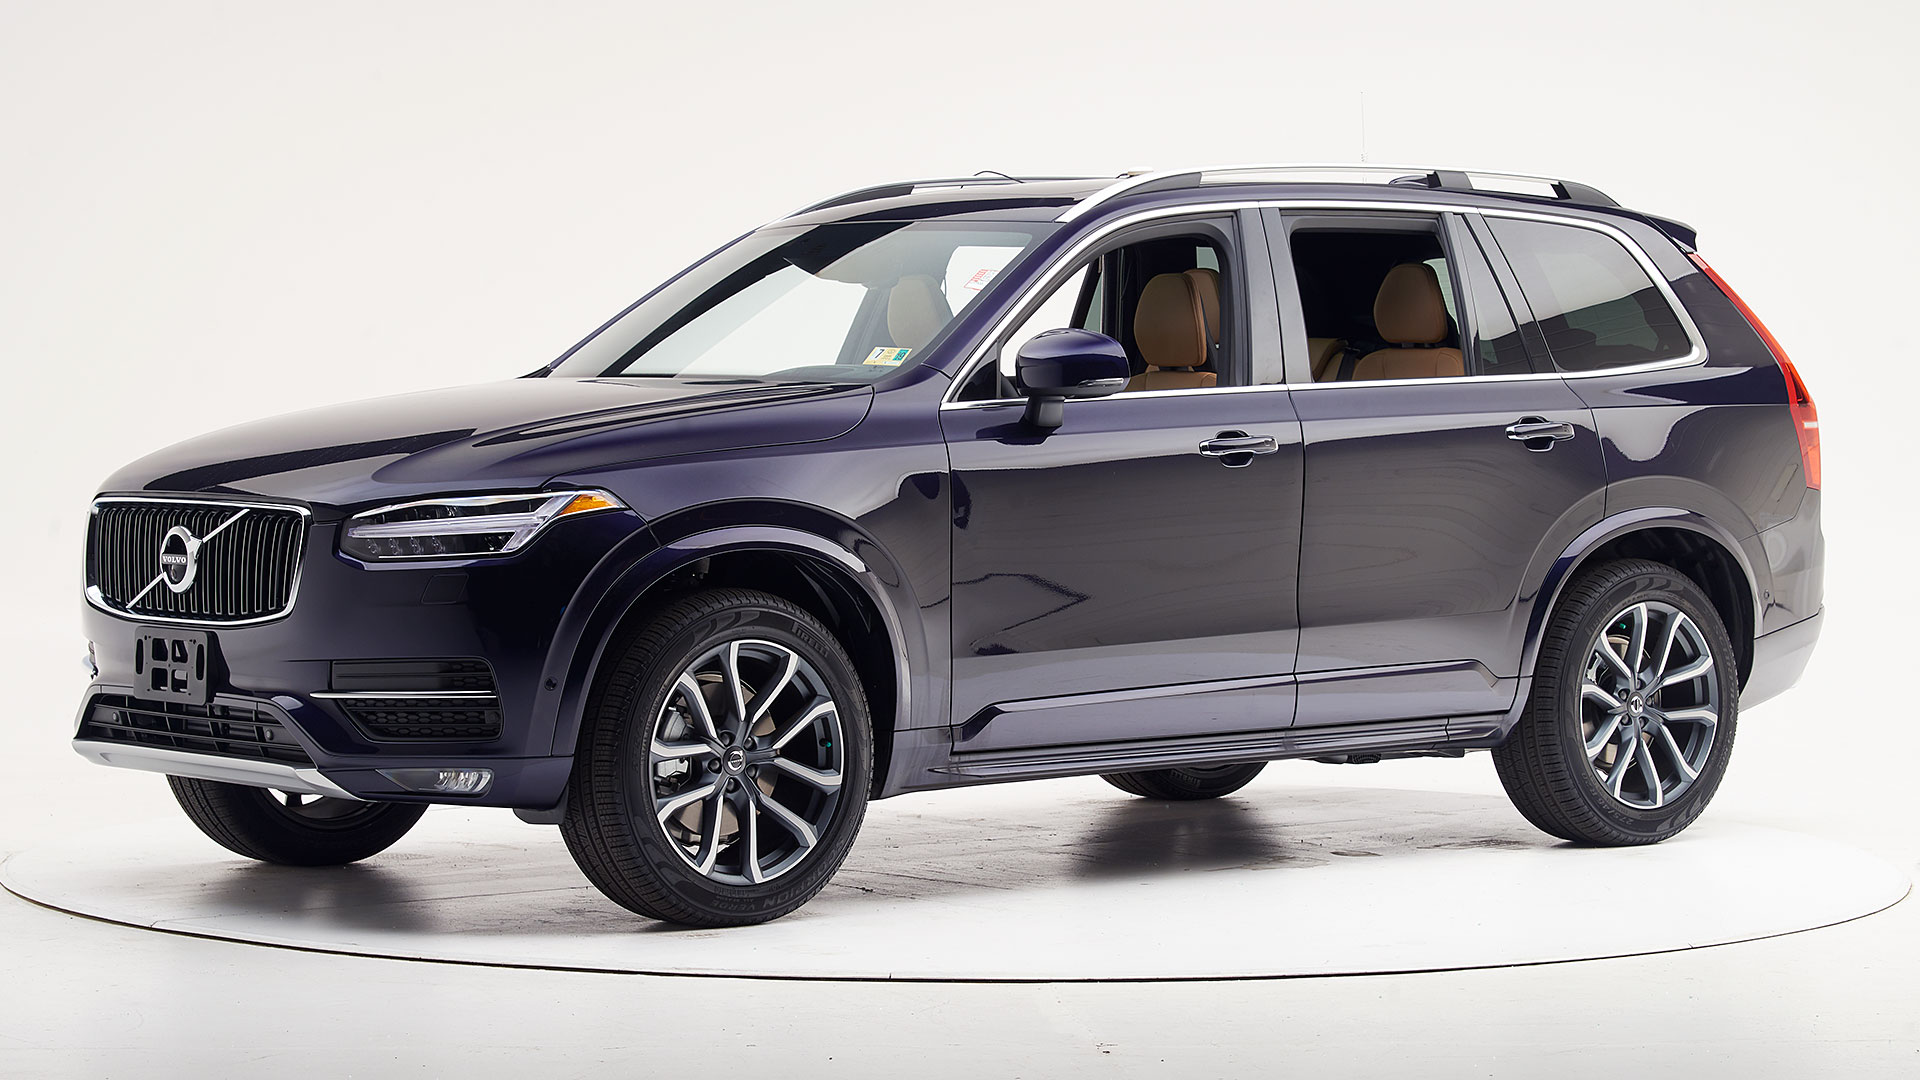 2019 Volvo XC90 4-door SUV